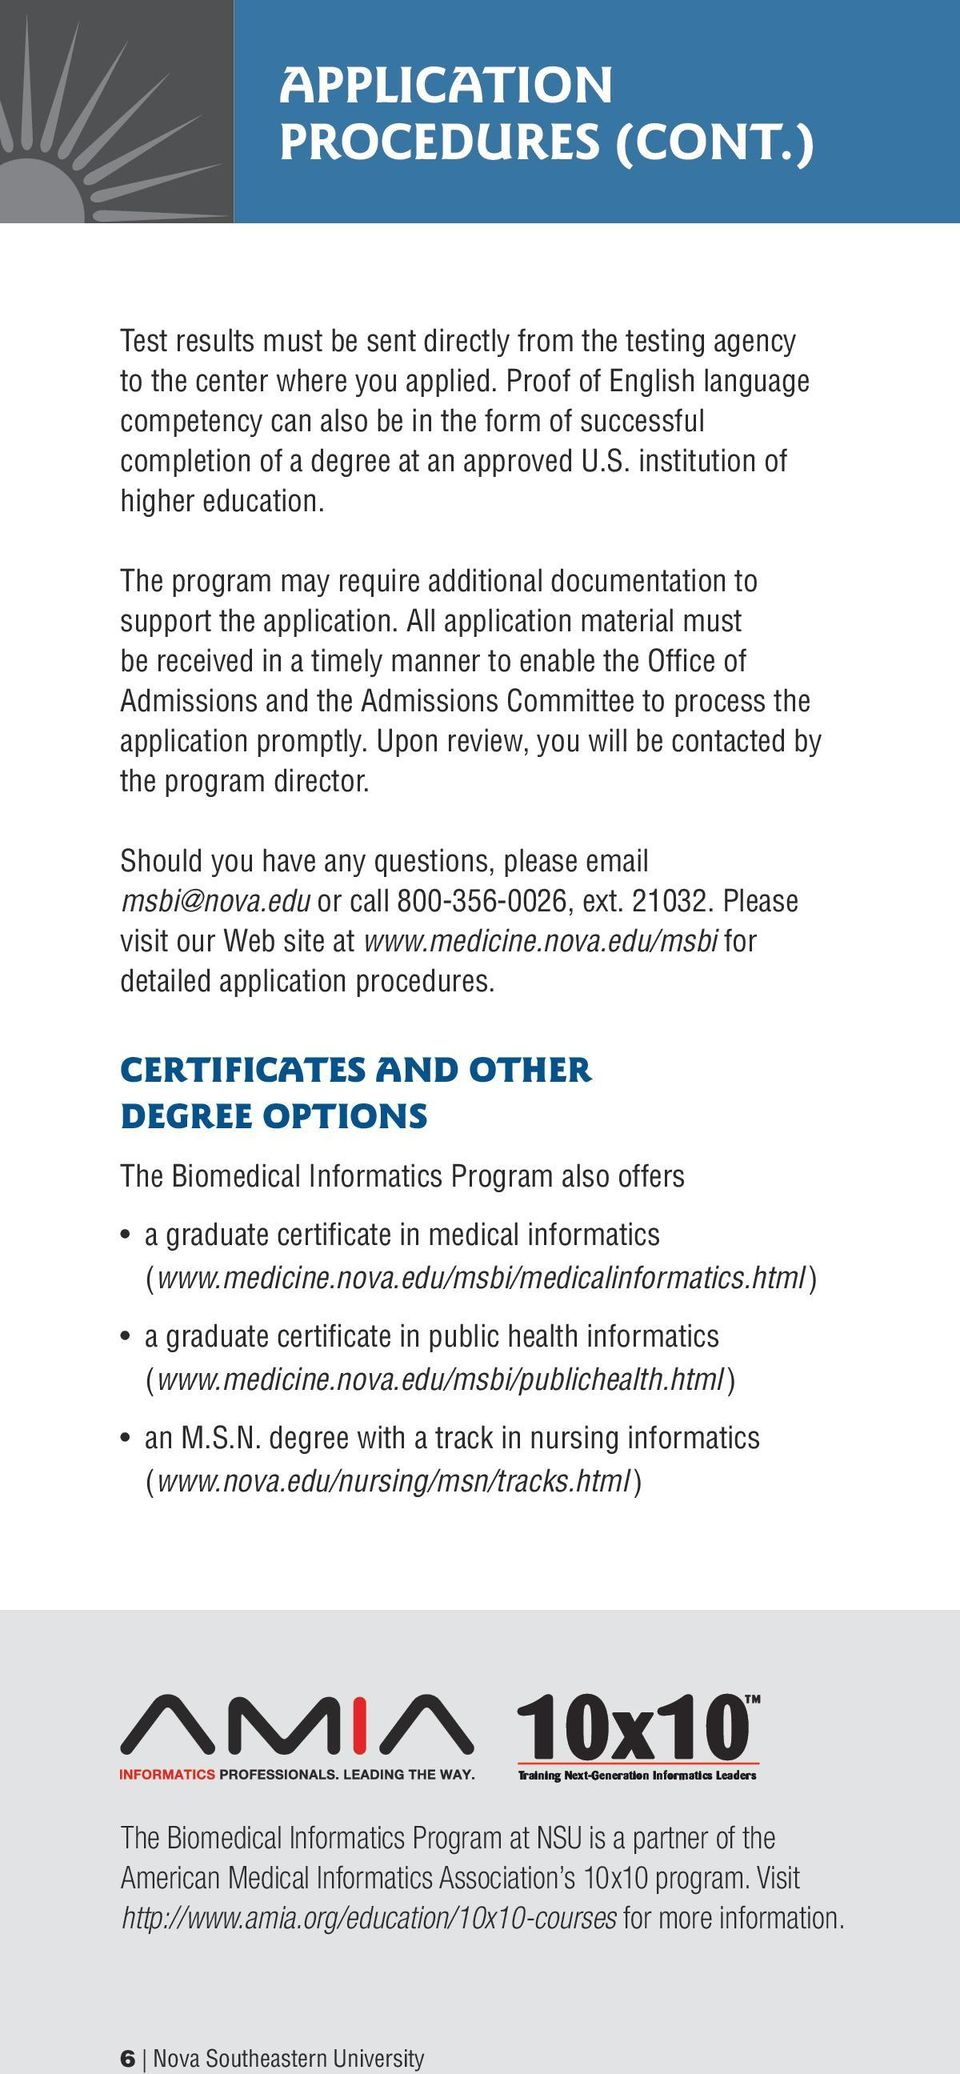 The program may require additional documentation to support the application.